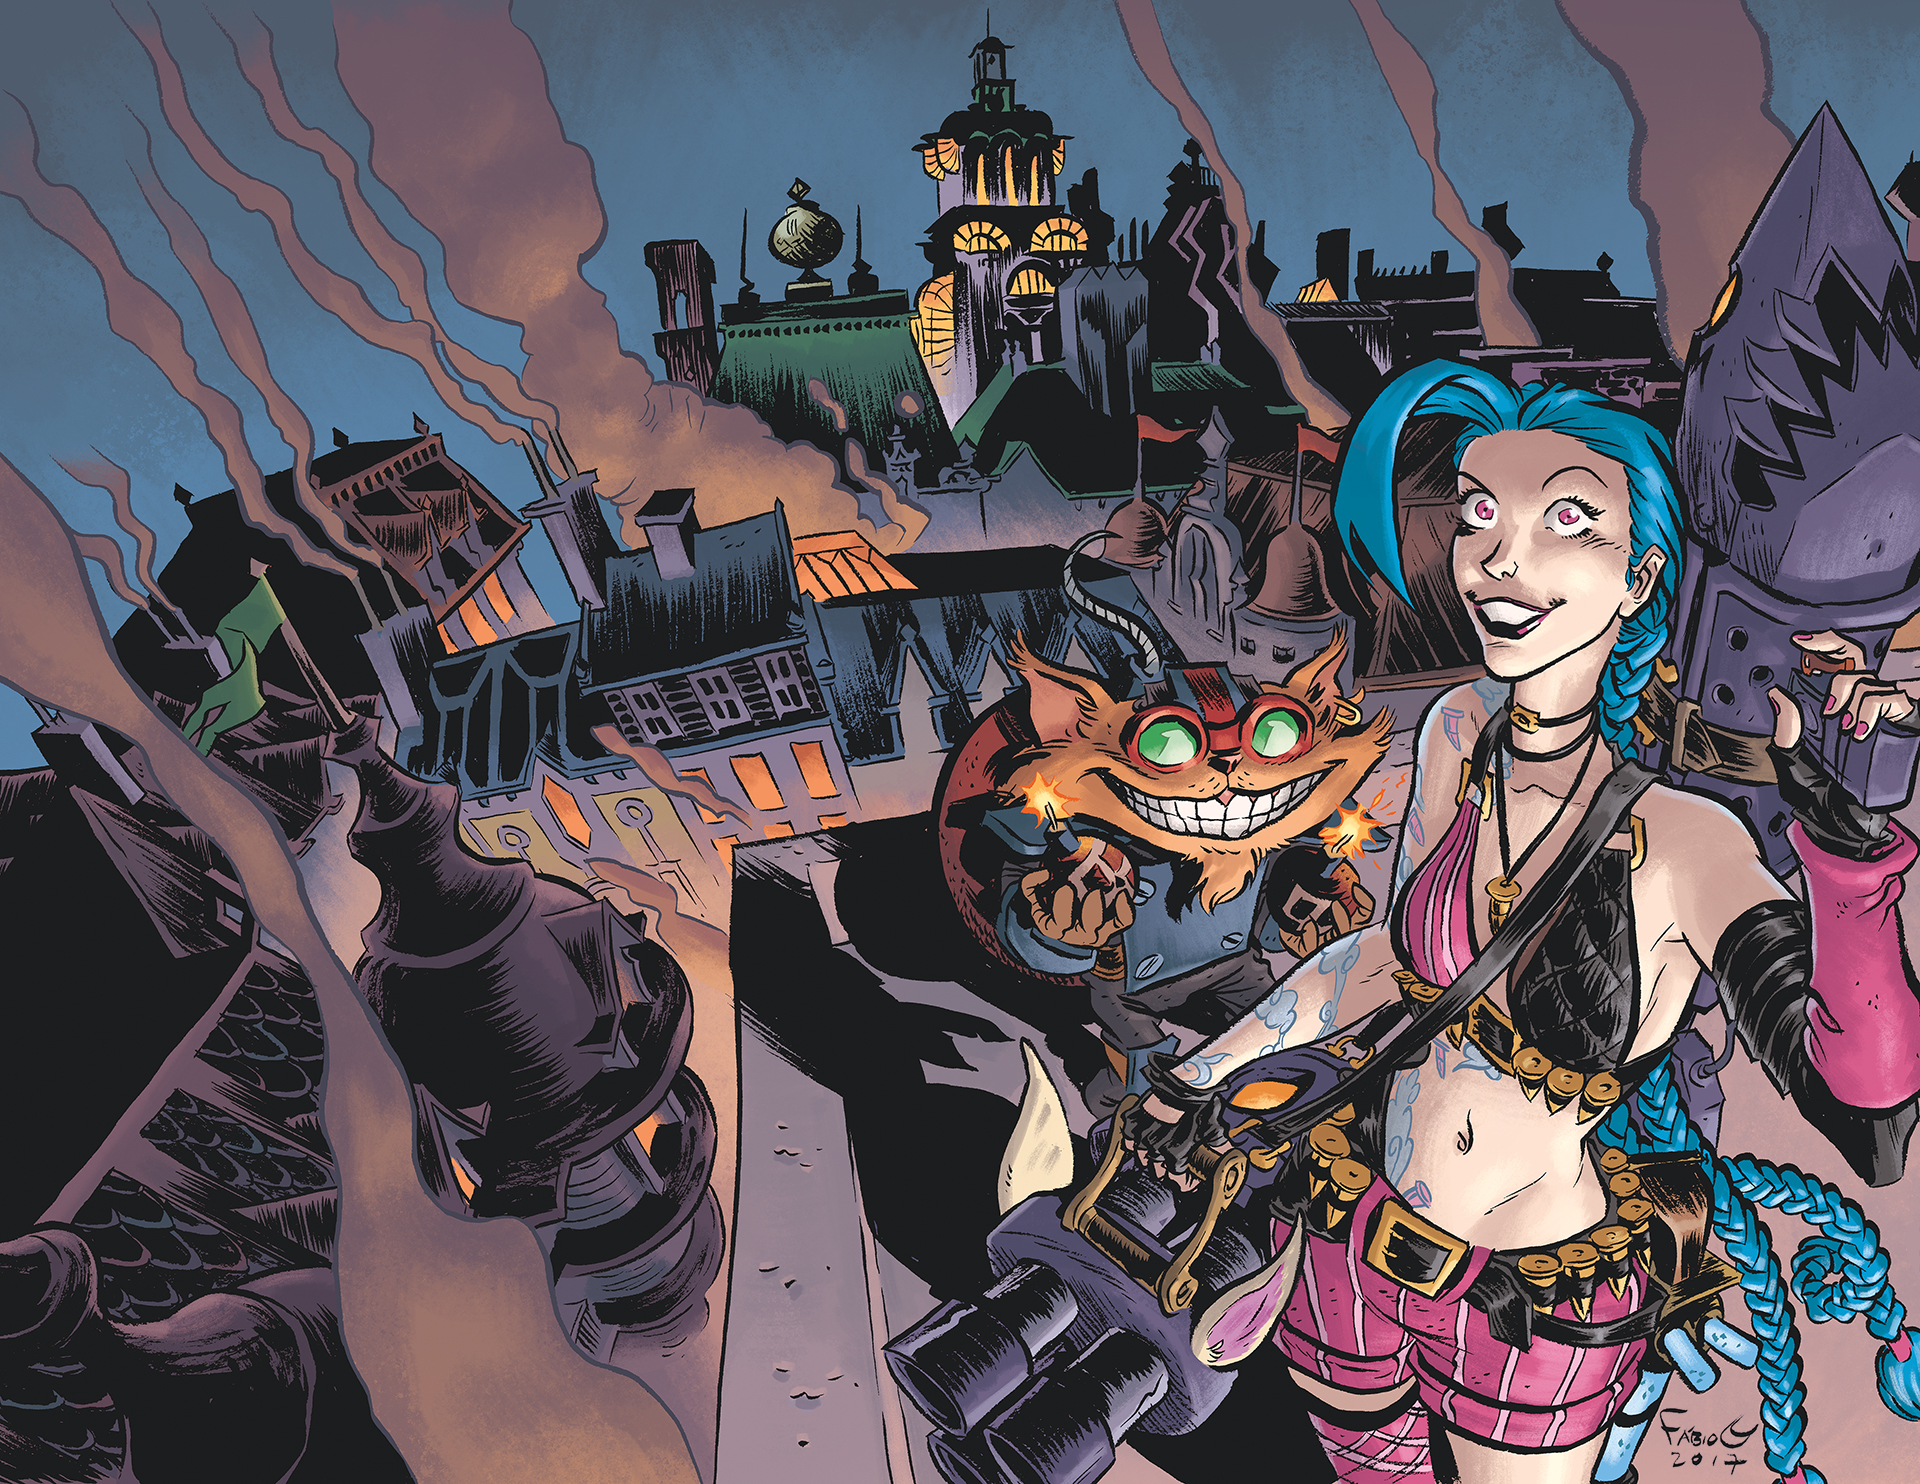 Ziggs and Jinx Paint the Town cover 02